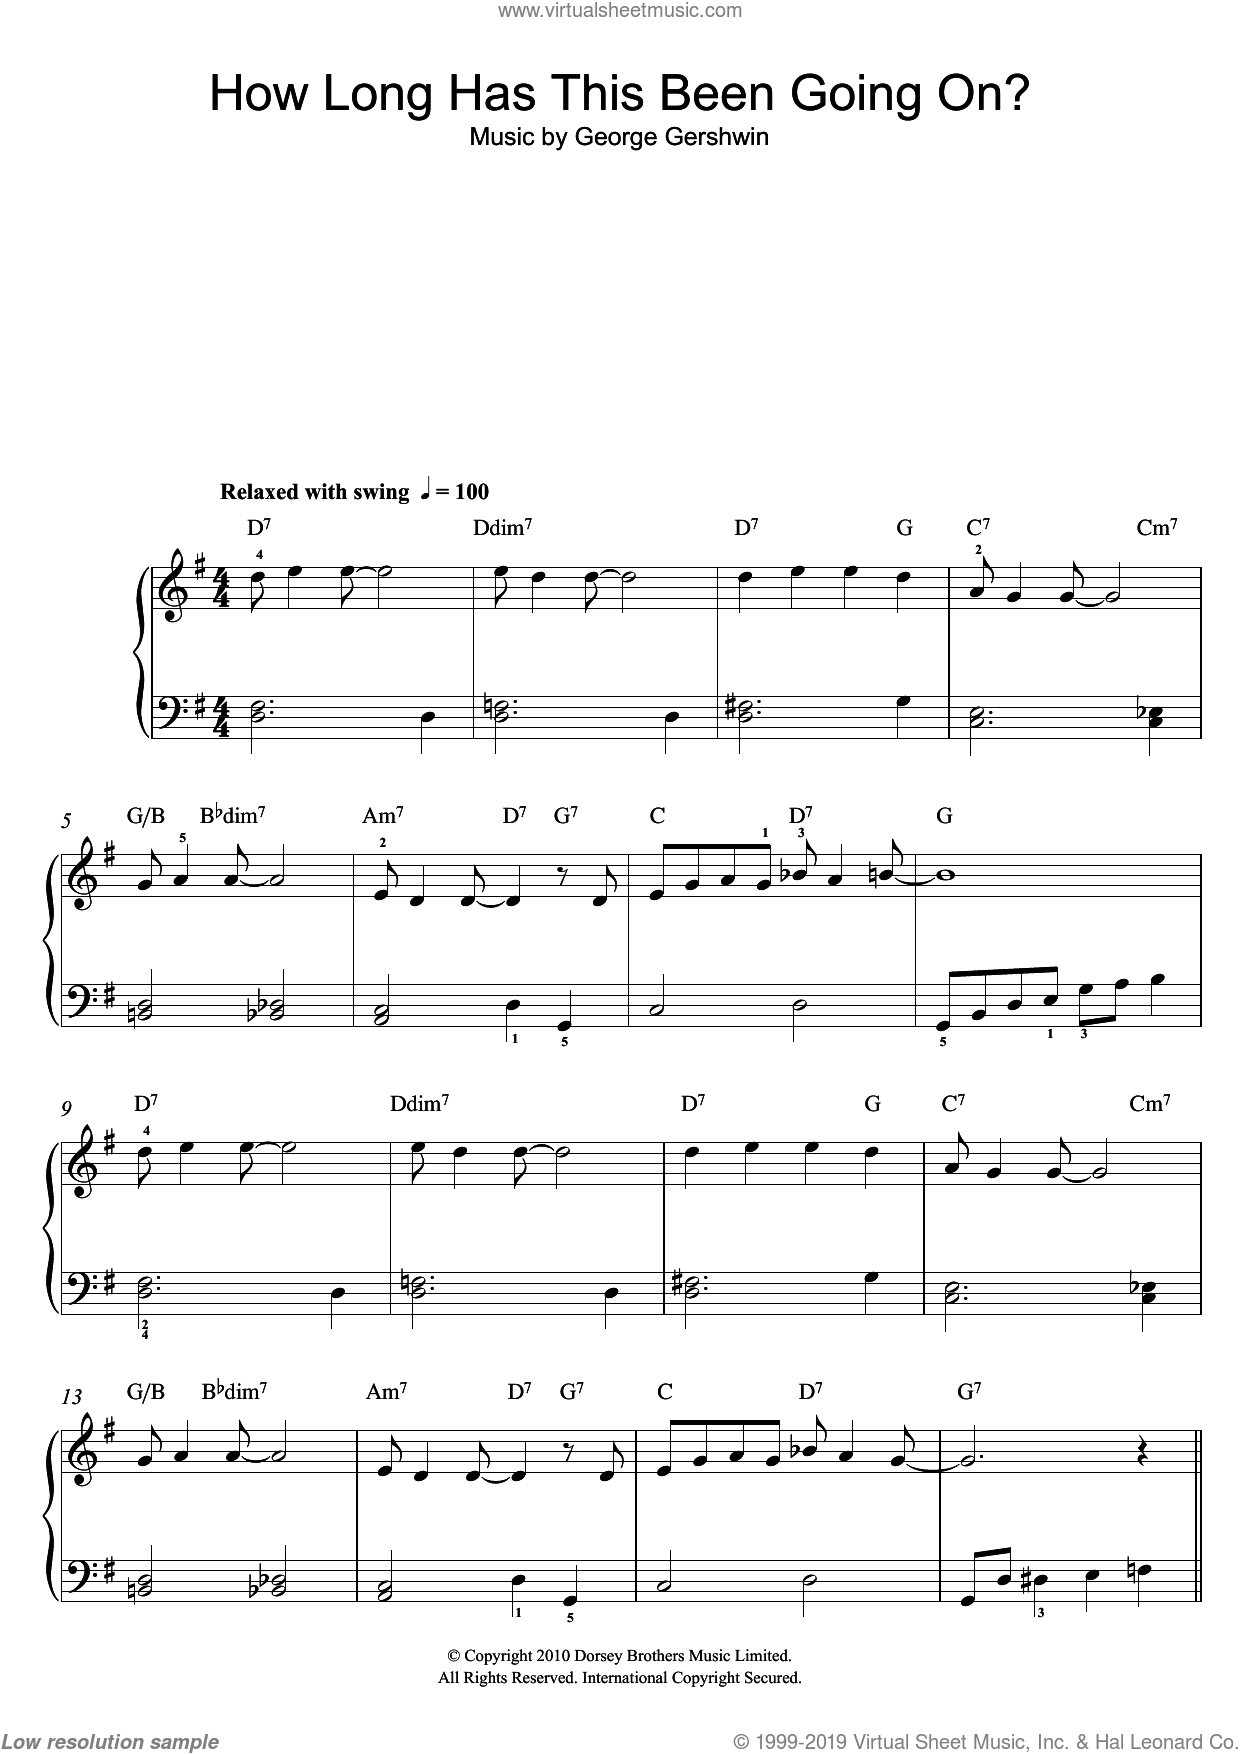 How Long Has This Been Going On? sheet music for piano solo (chords) by George Gershwin